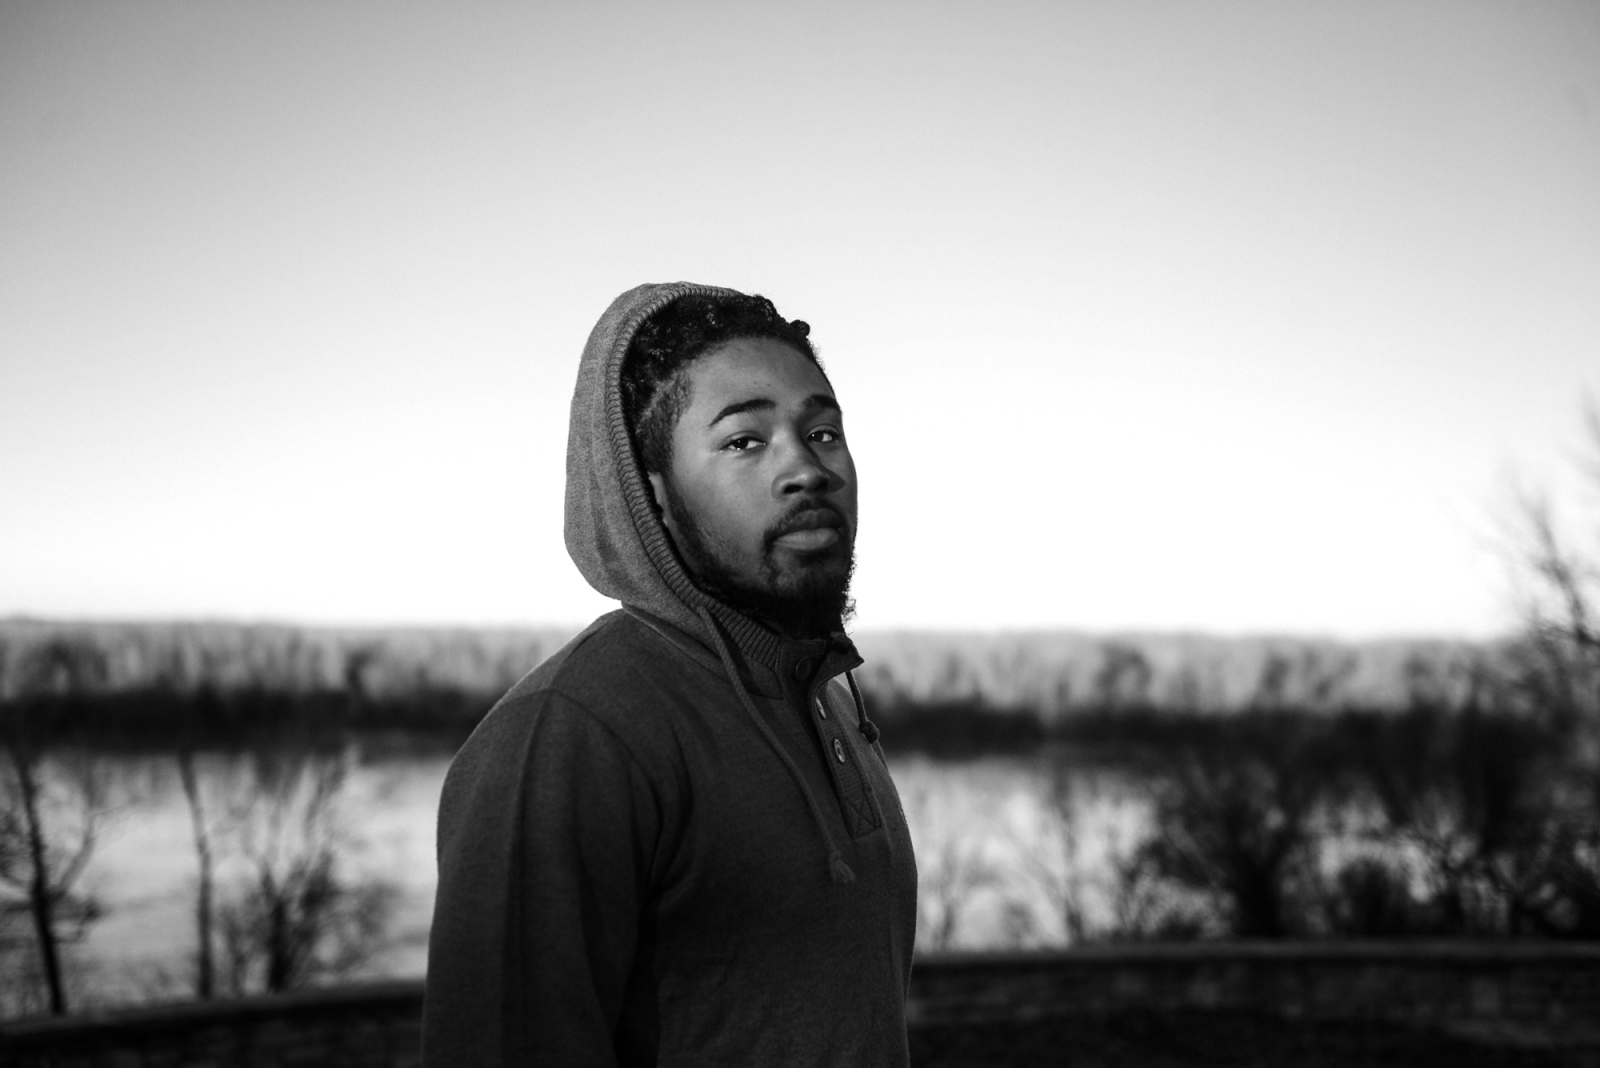 Marcellus Buckley / Marcellus Da Poet in Spanish Lake, a previous site where the Spanish kept African American slaves.